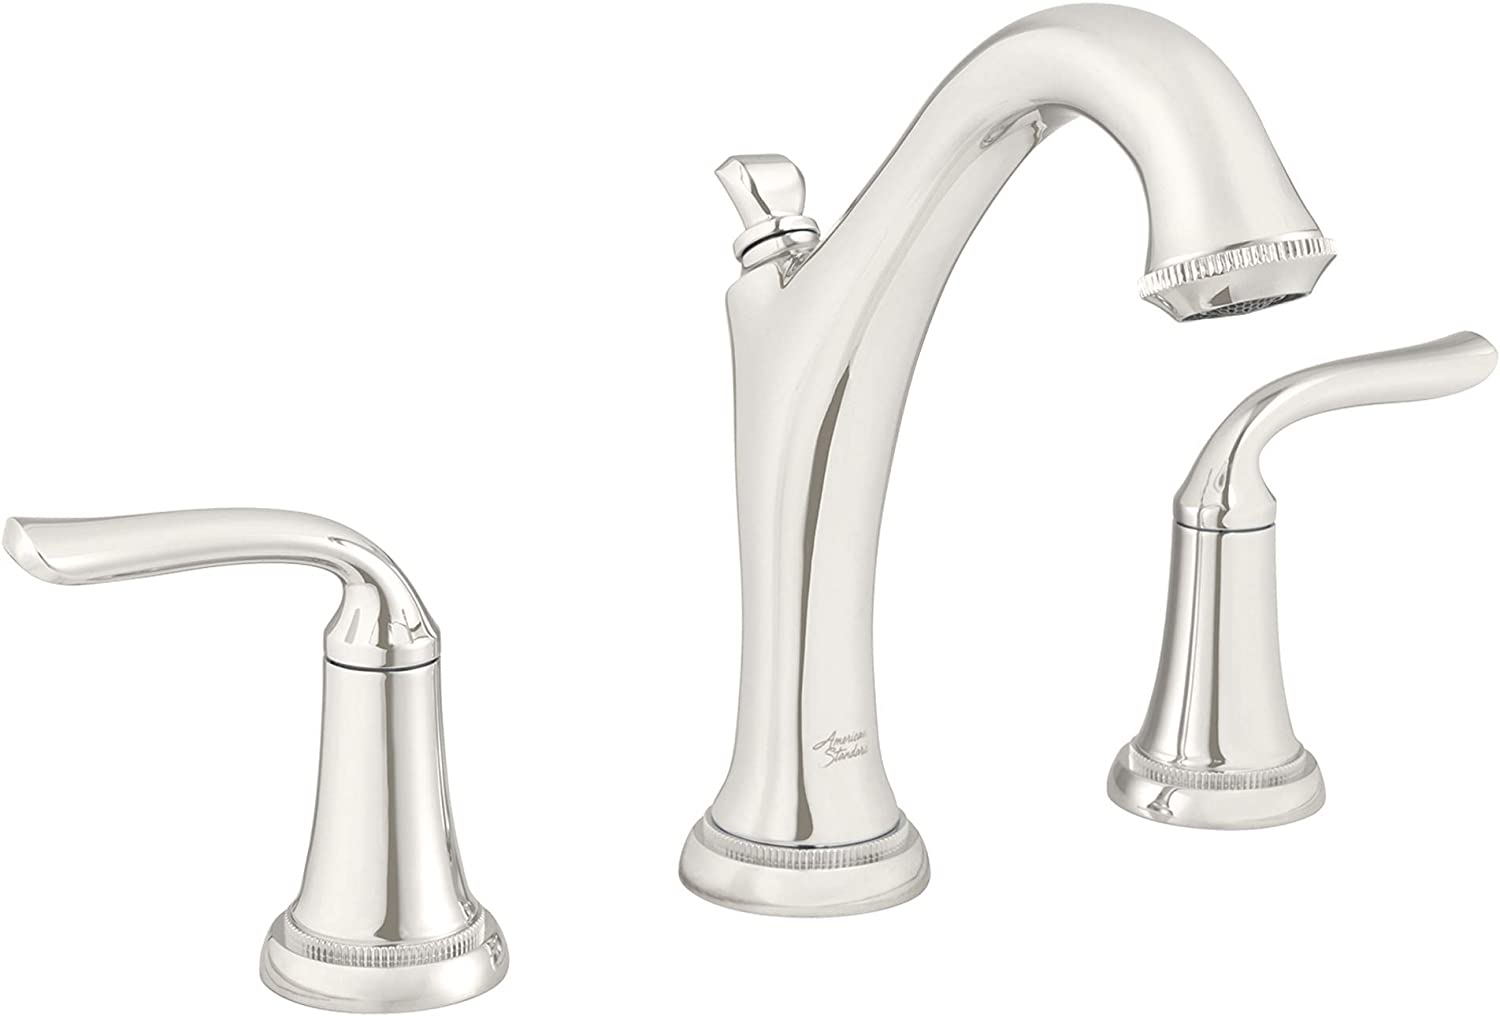 American Standard 7106801.013 Patience Widespread Bathroom Faucet, Polished Nickel